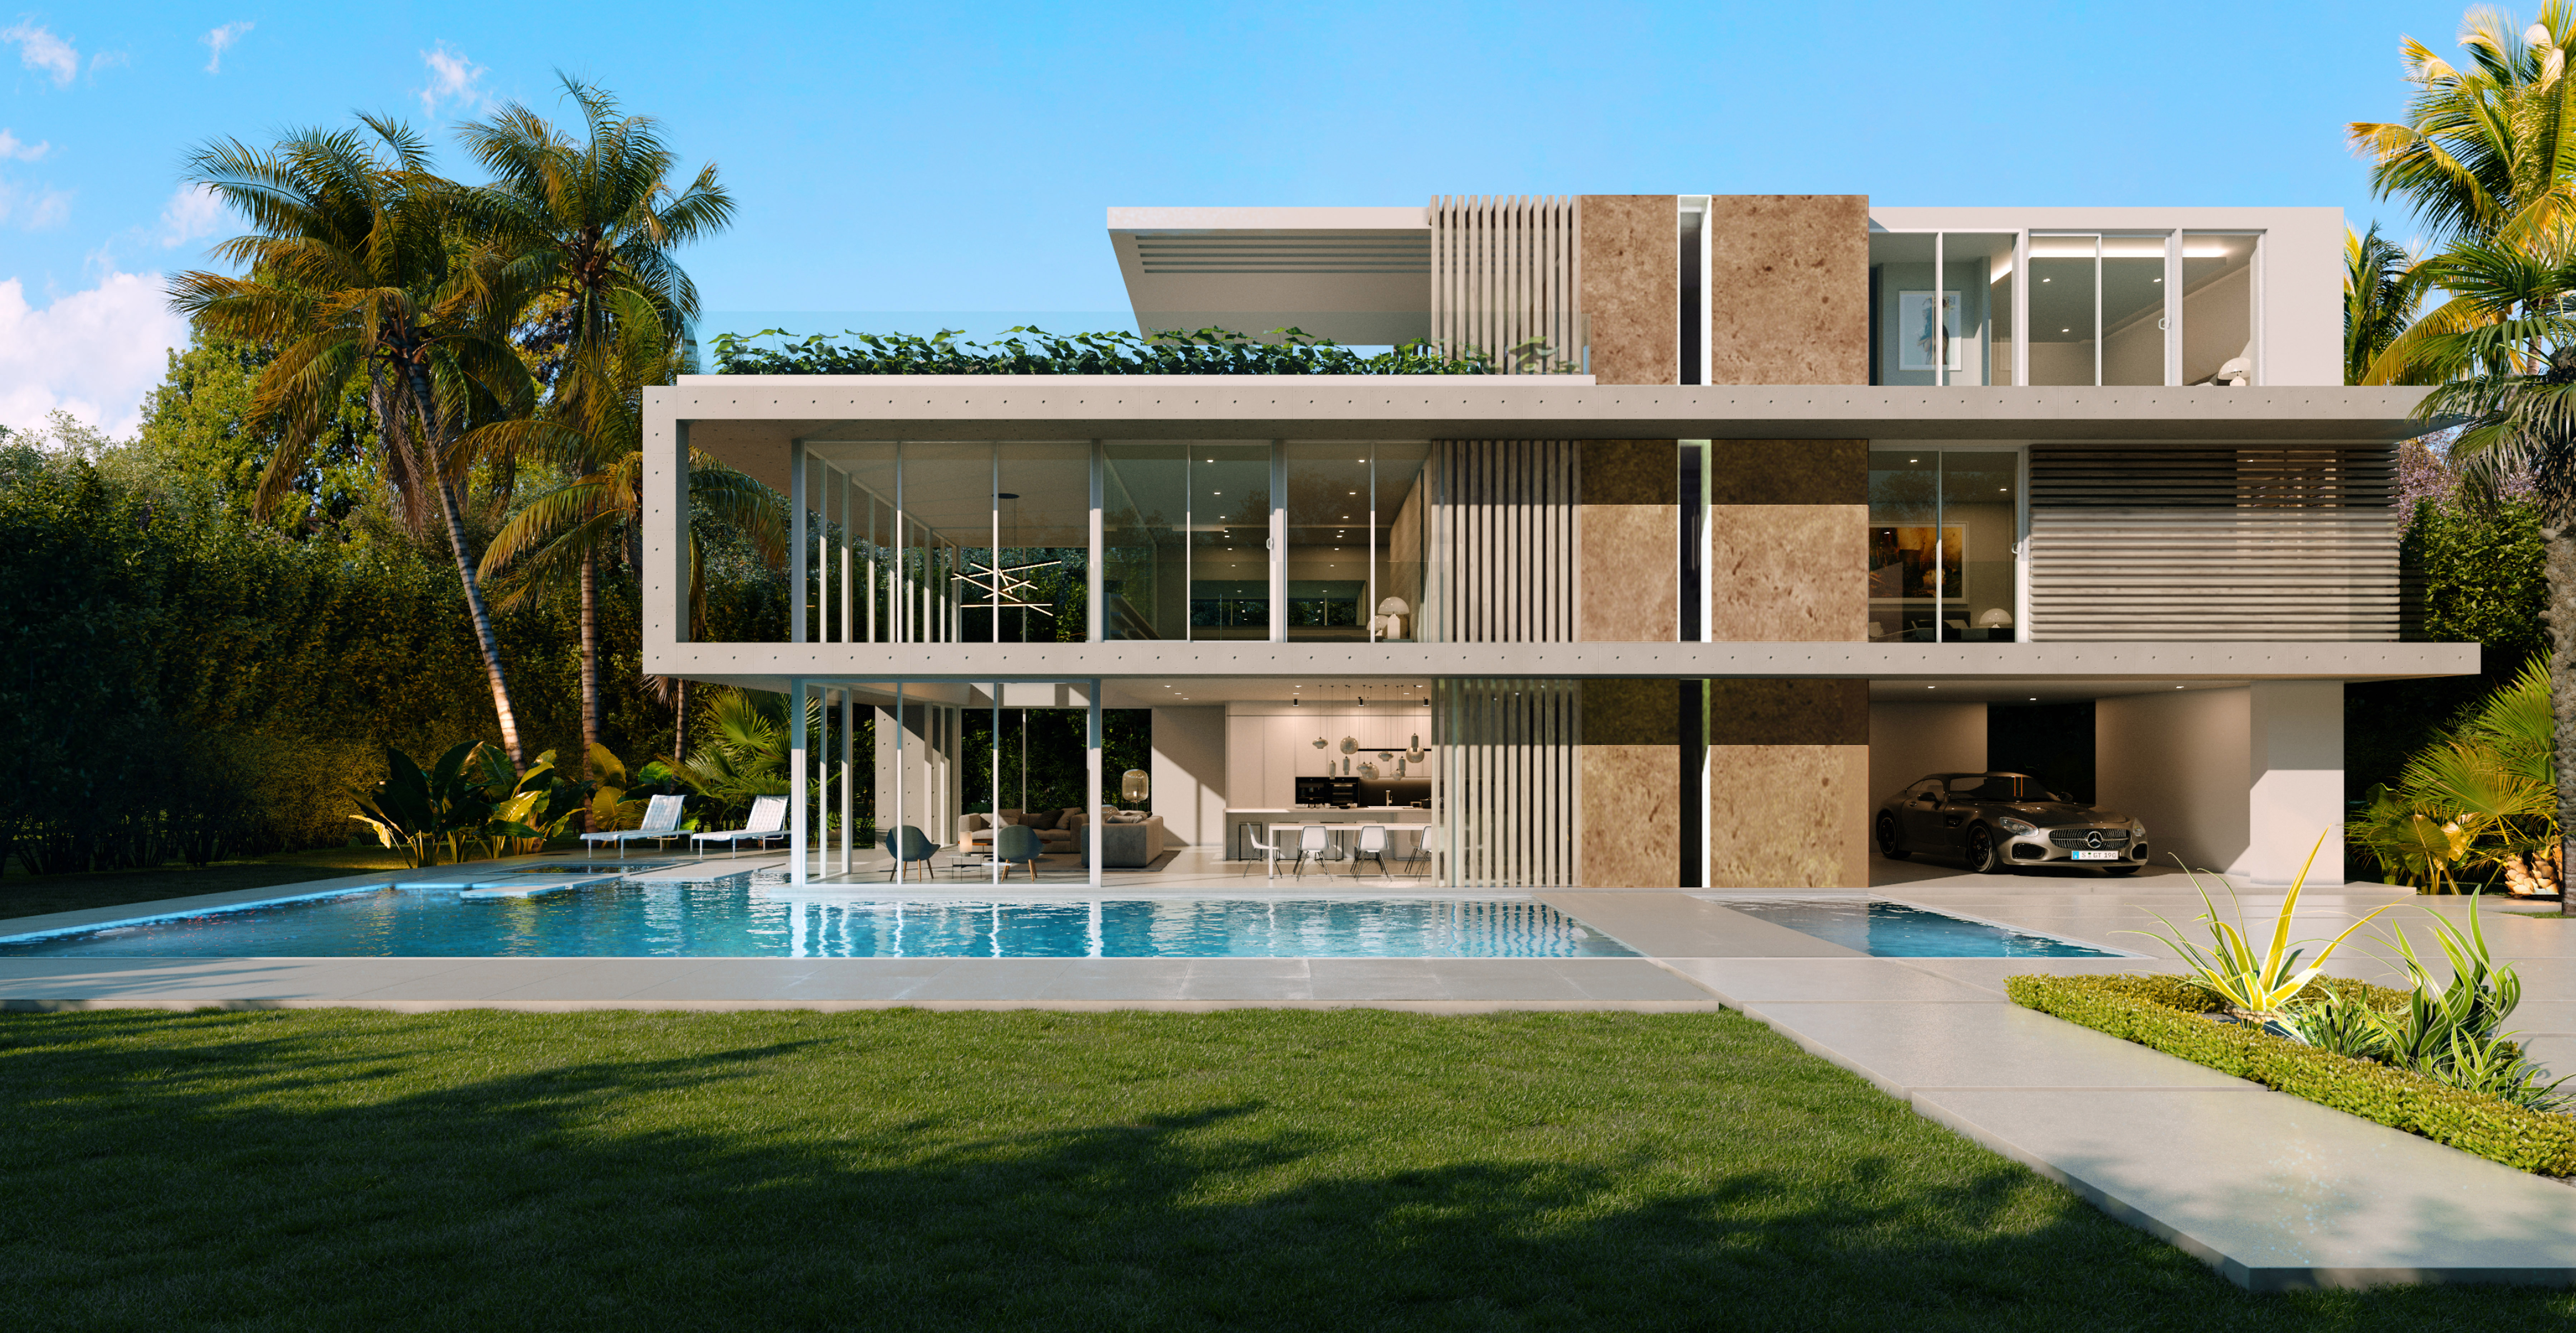 Fort Lauderdale architects